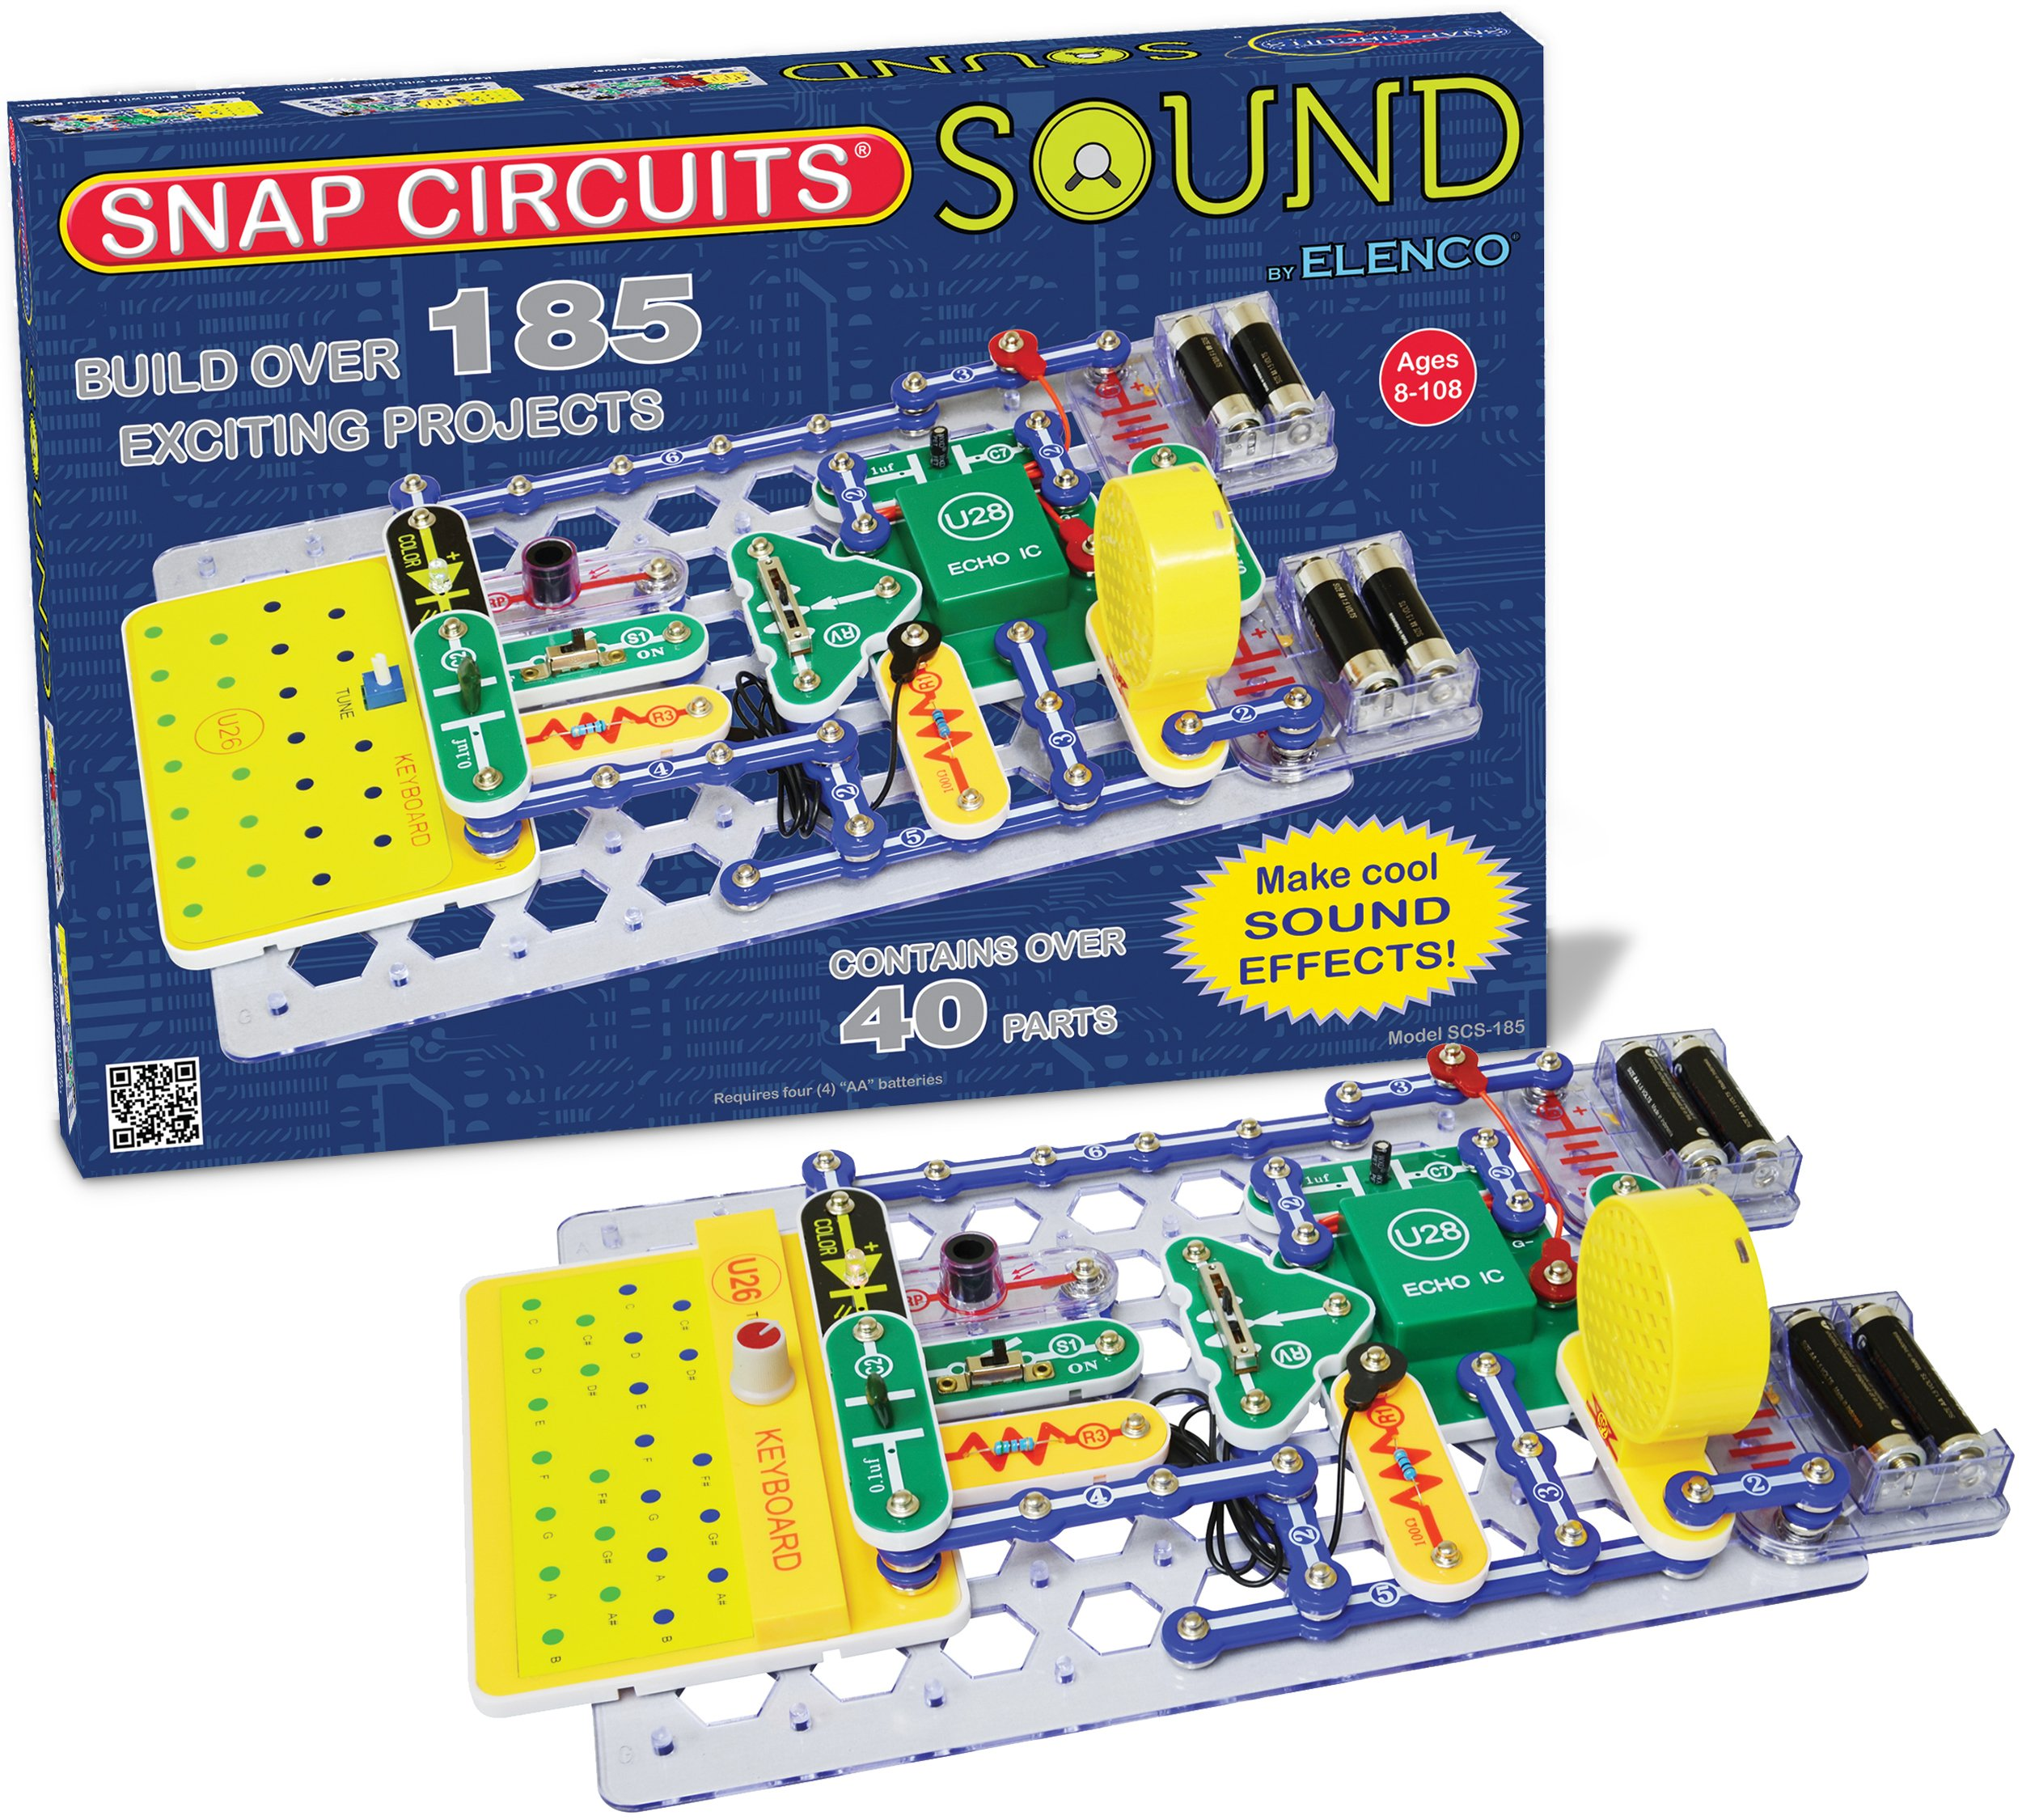 Snap Circuits Sound Electronics Exploration Kit | 185 Fun STEM Projects | 4-Color Project Manual | 40+  Snap Modules | Unlimited Fun by Snap Circuits